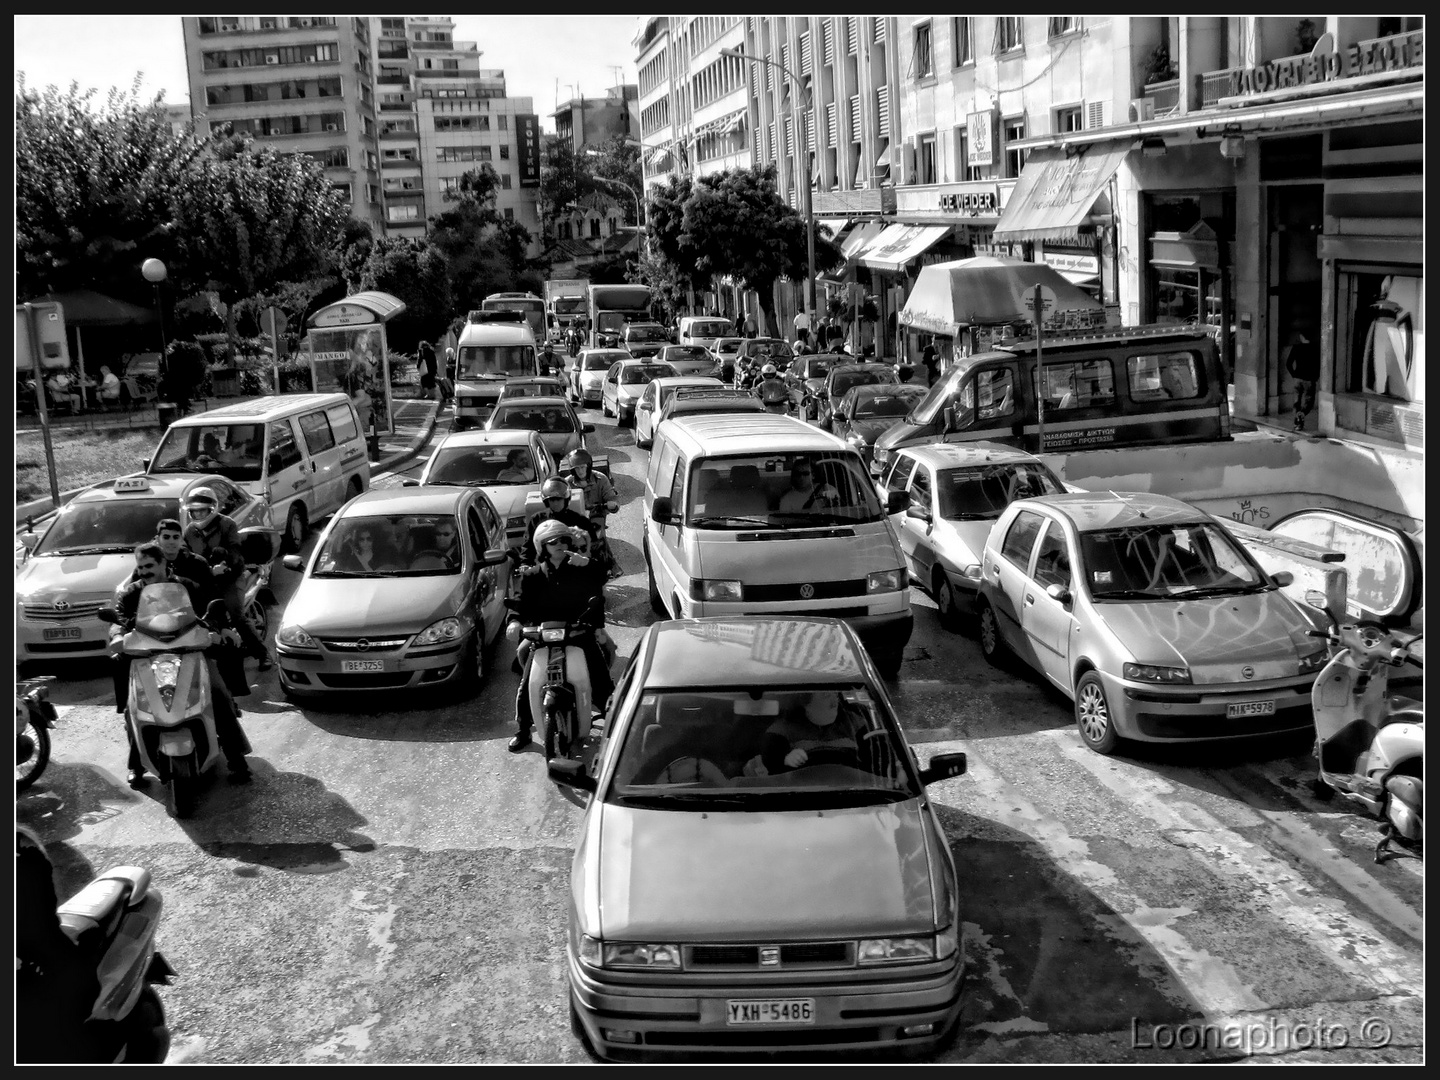 ...just on the street in the centre of Athens...